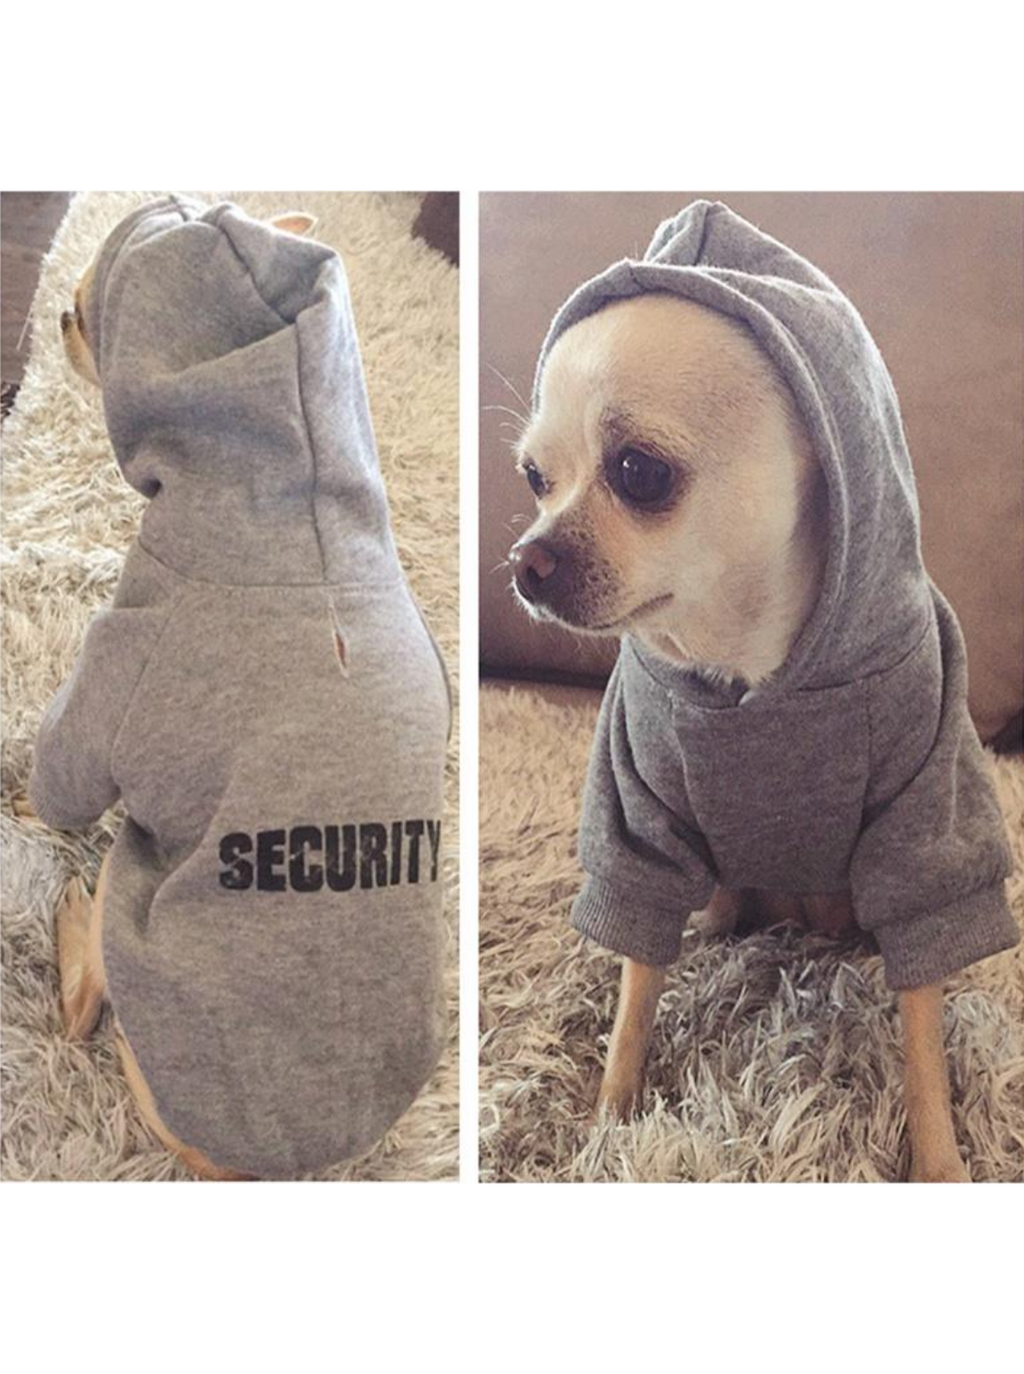 serious security dog